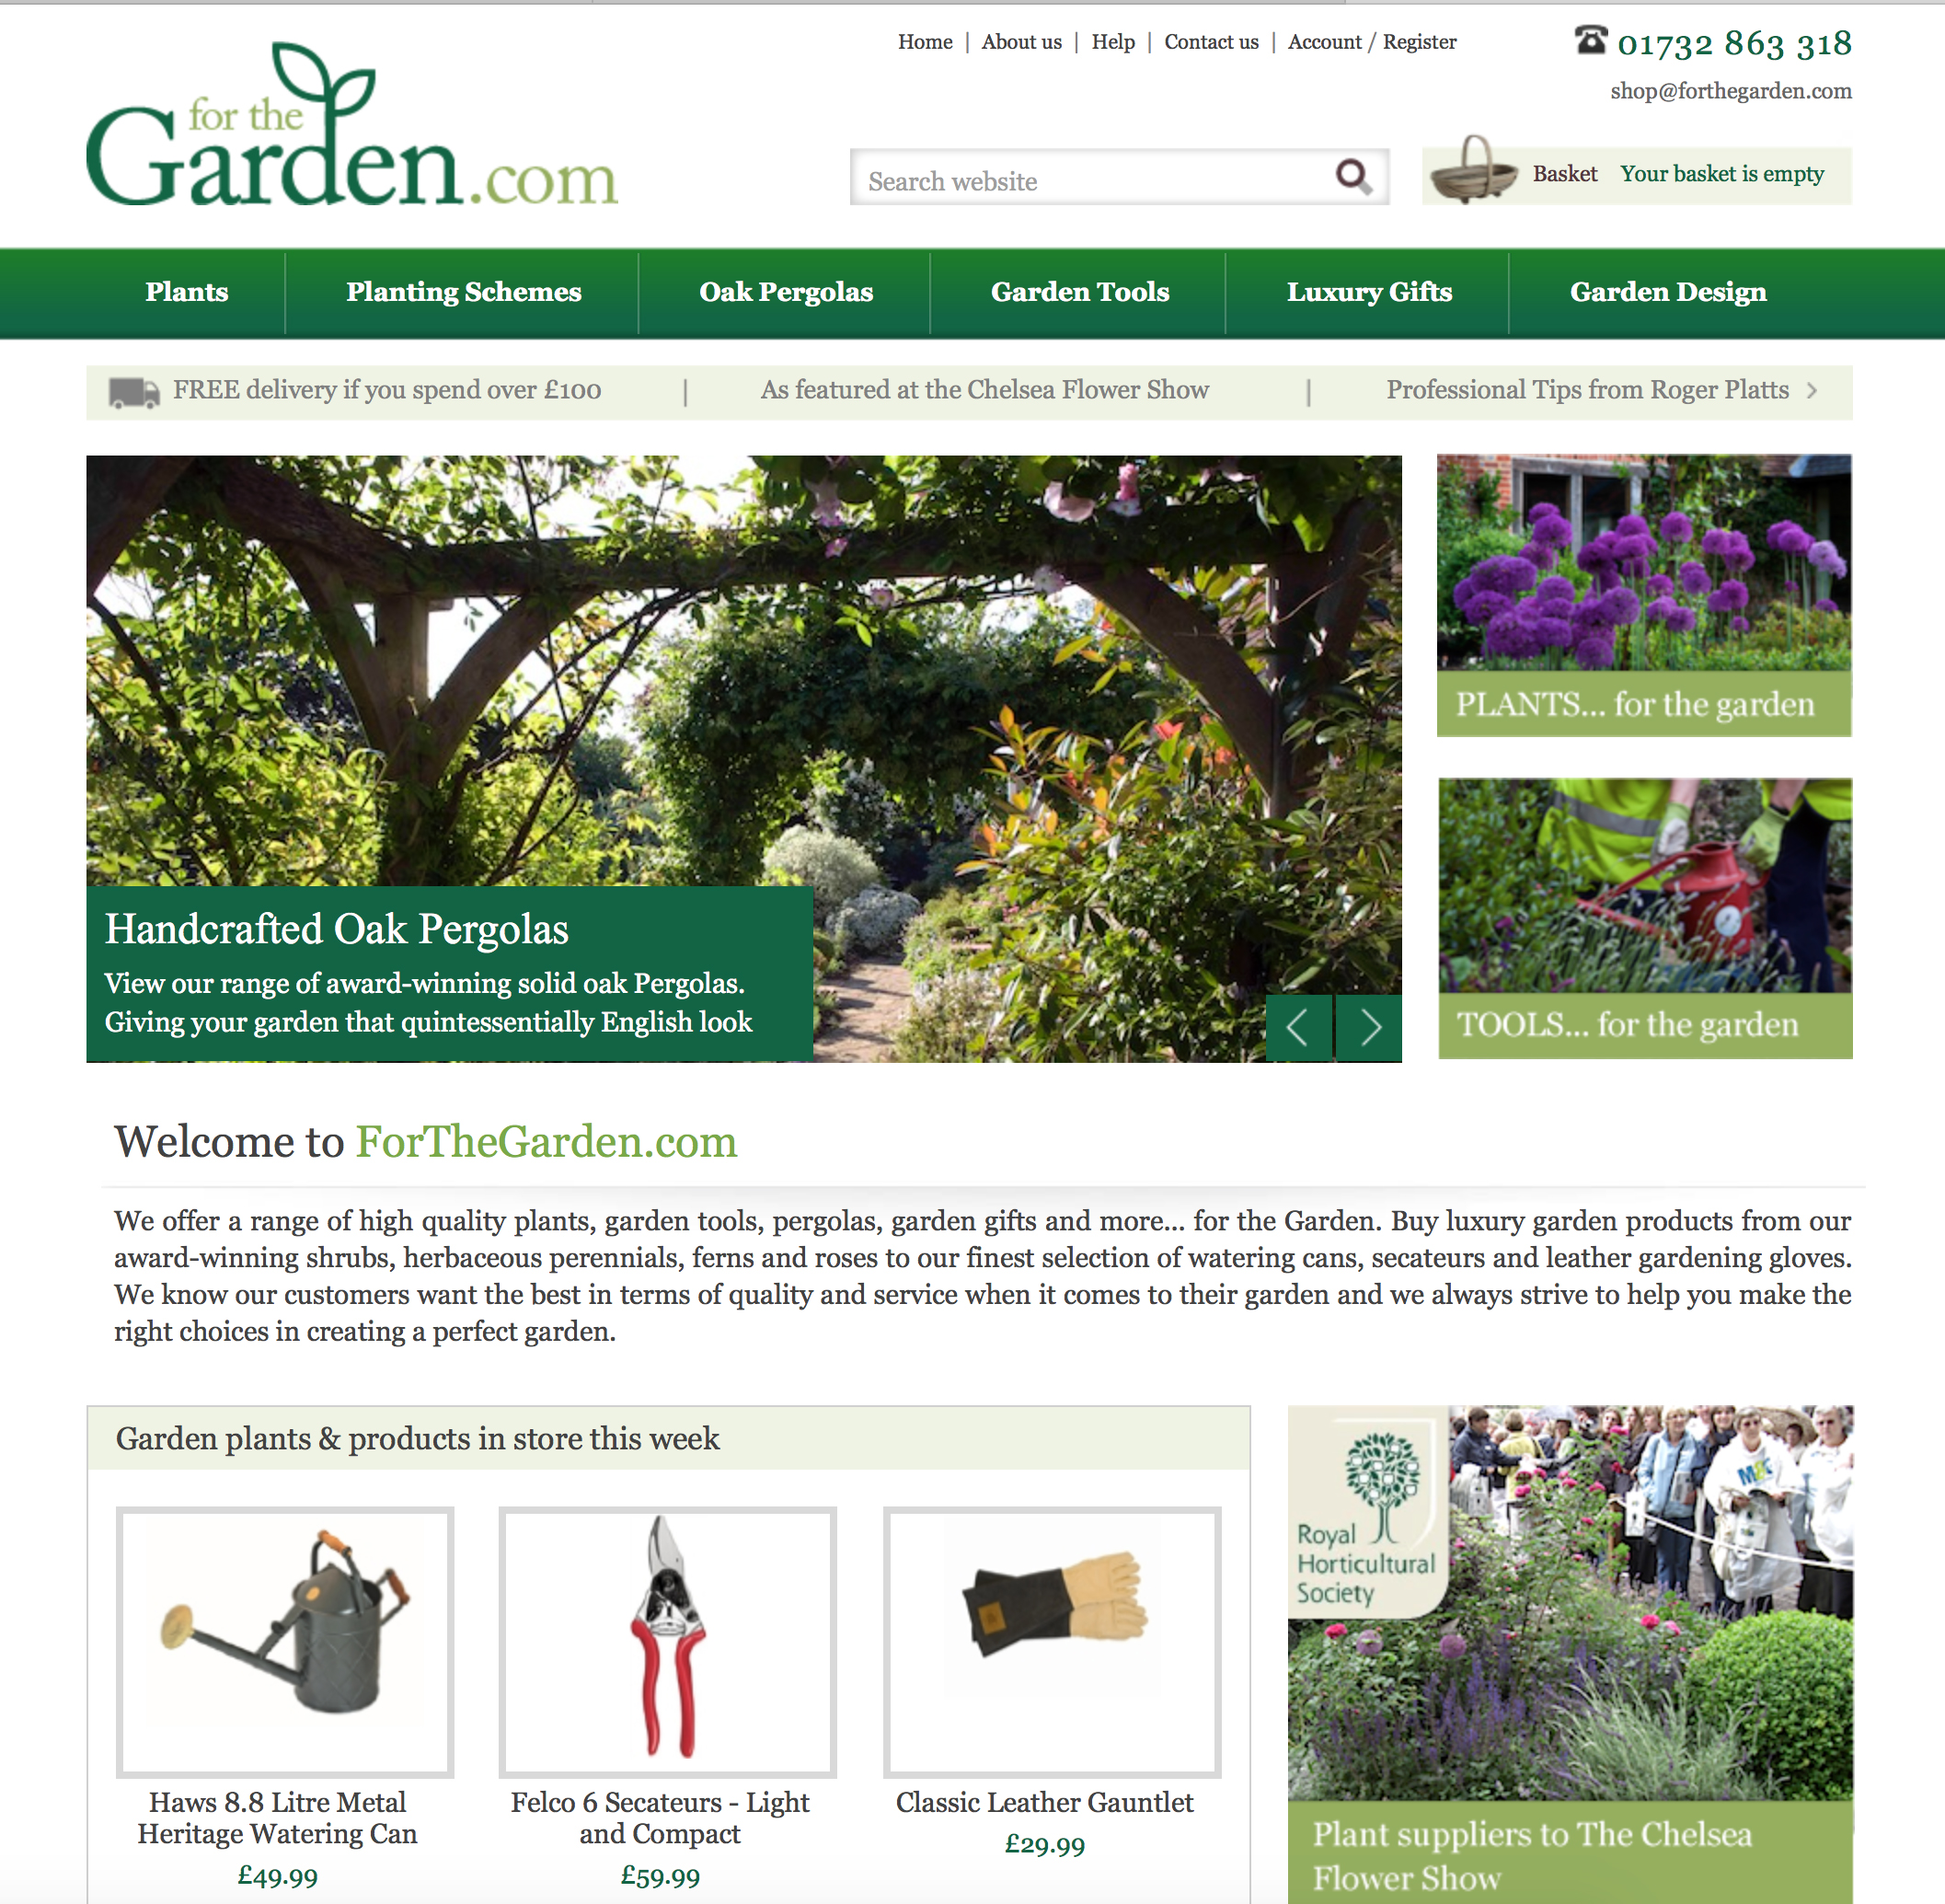 Adrenesign Were Consulted By For The Garden.com In Order To Produce A  Bespoke ECommerce Website Which Has Been Built On The Volusion Platform.